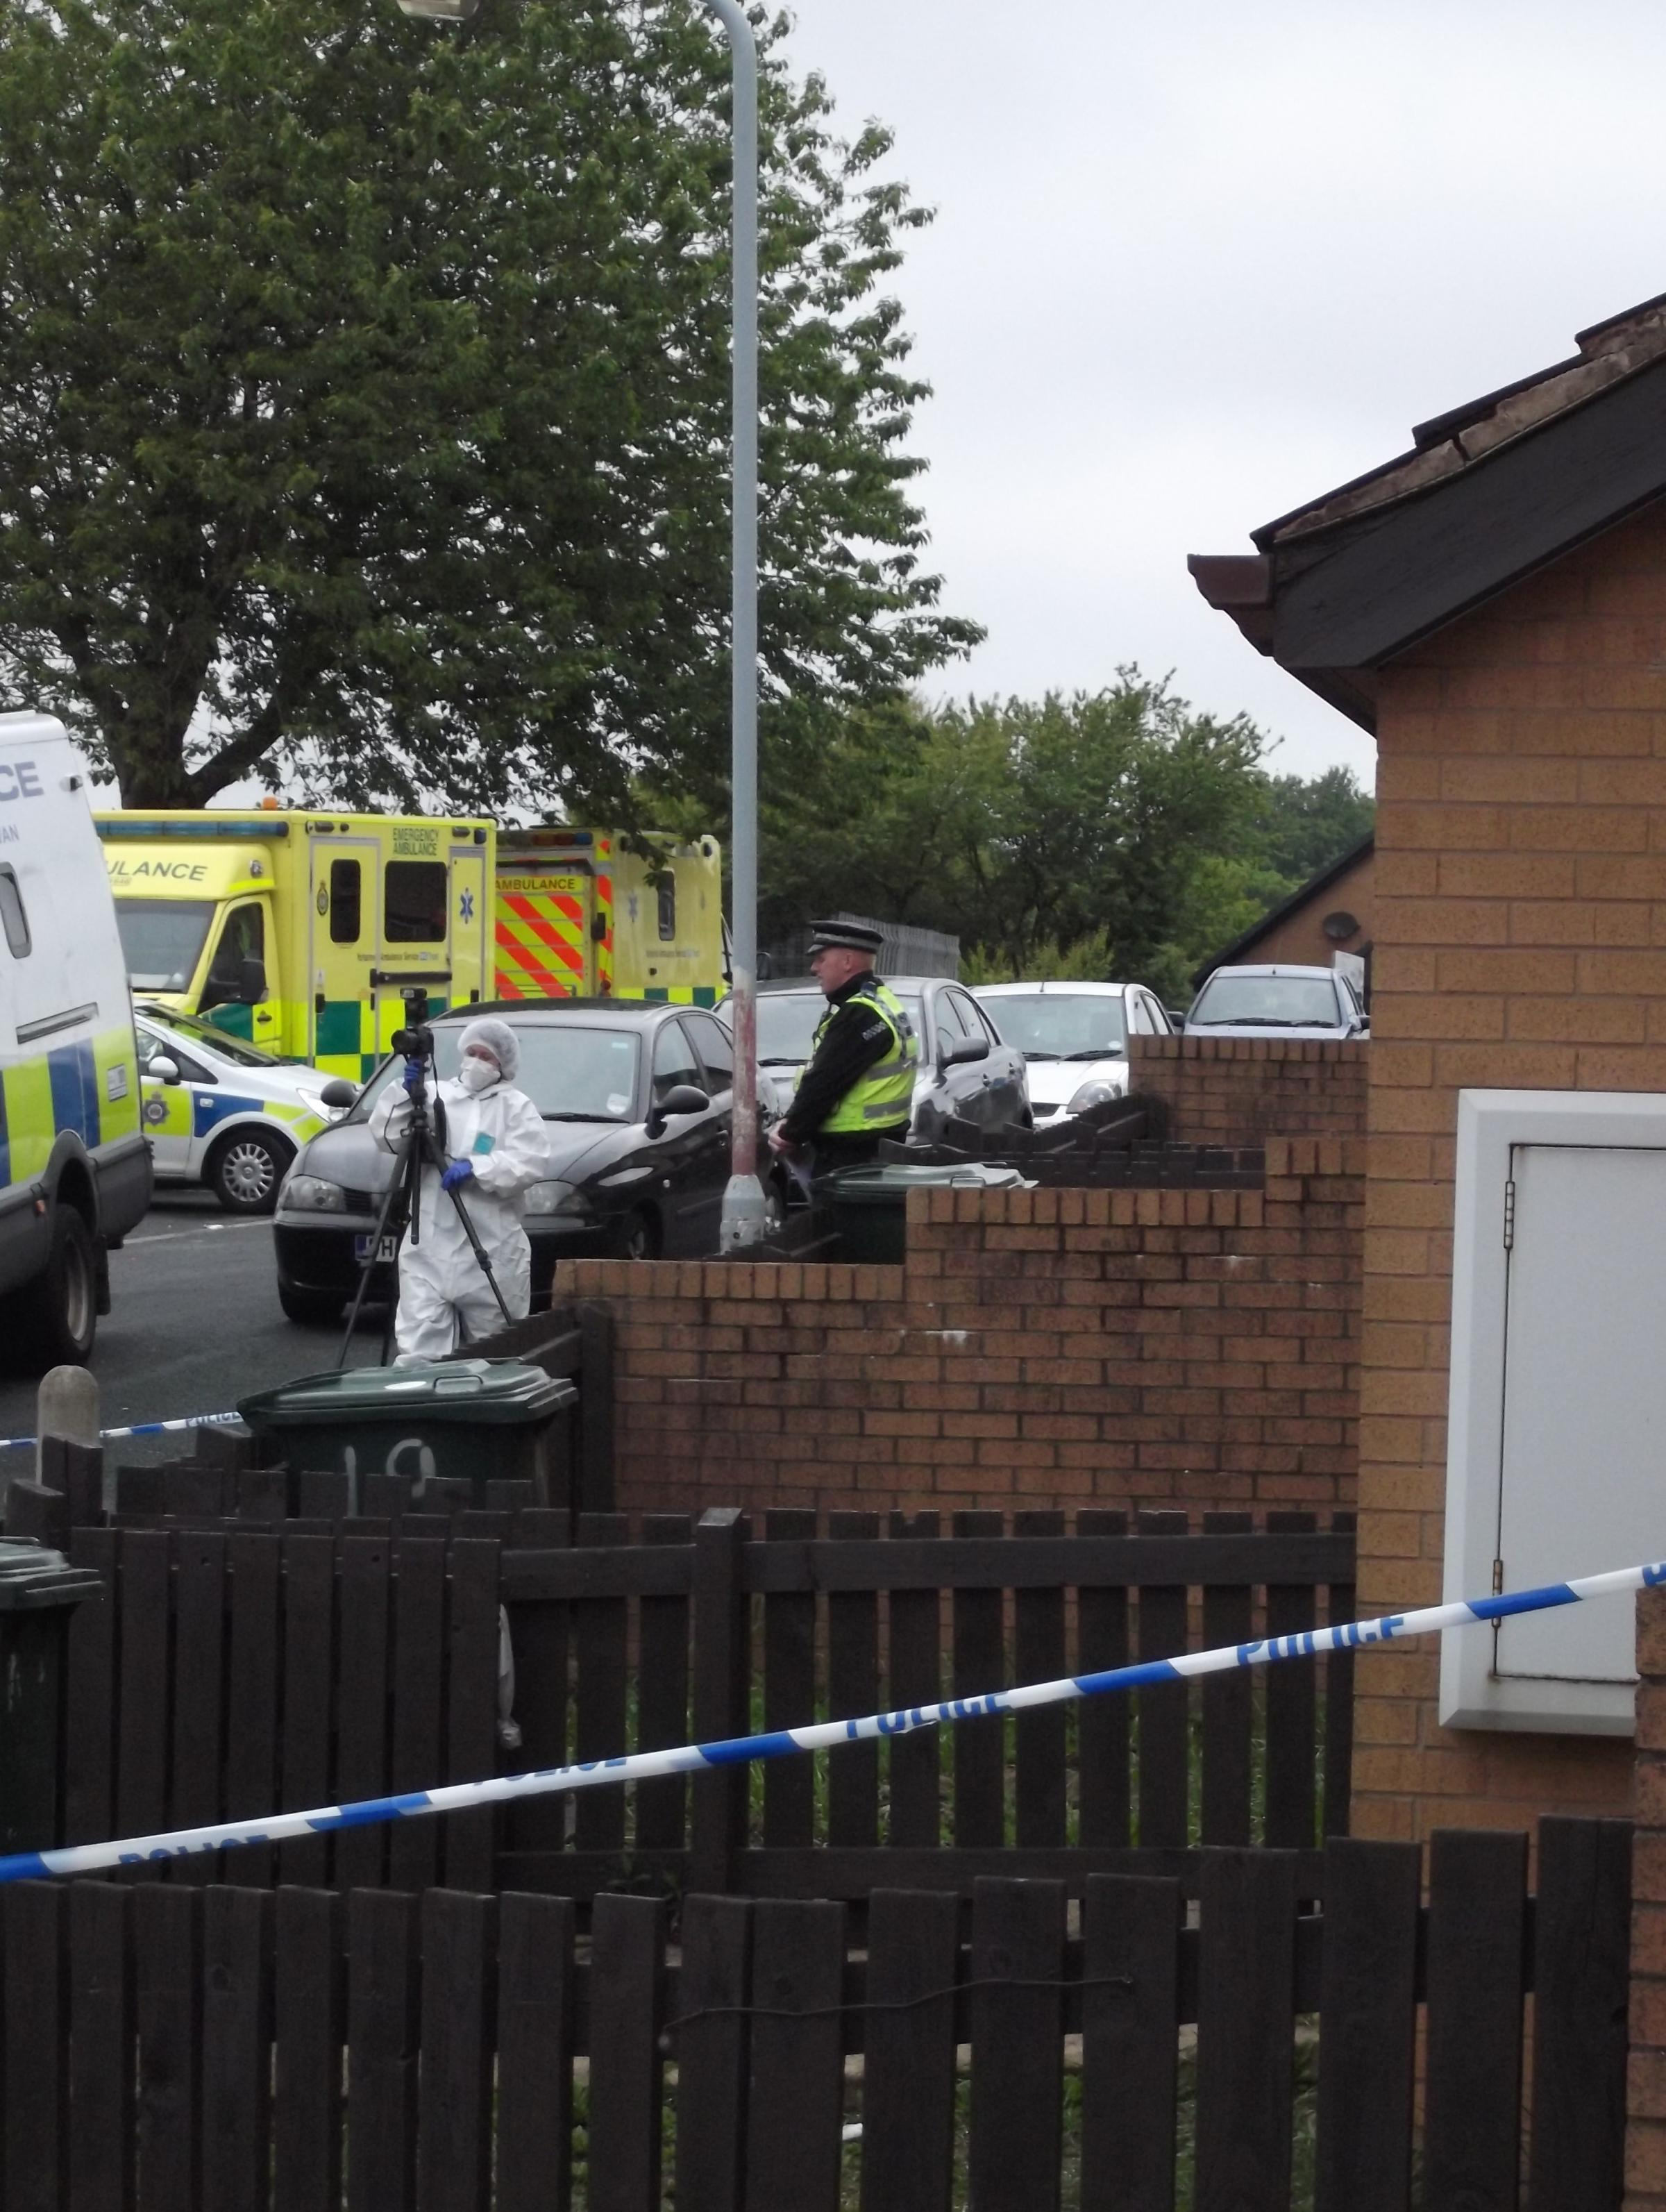 update pregnant w stabbed to death at bradford house from update pregnant w stabbed to death at bradford house from bradford telegraph and argus